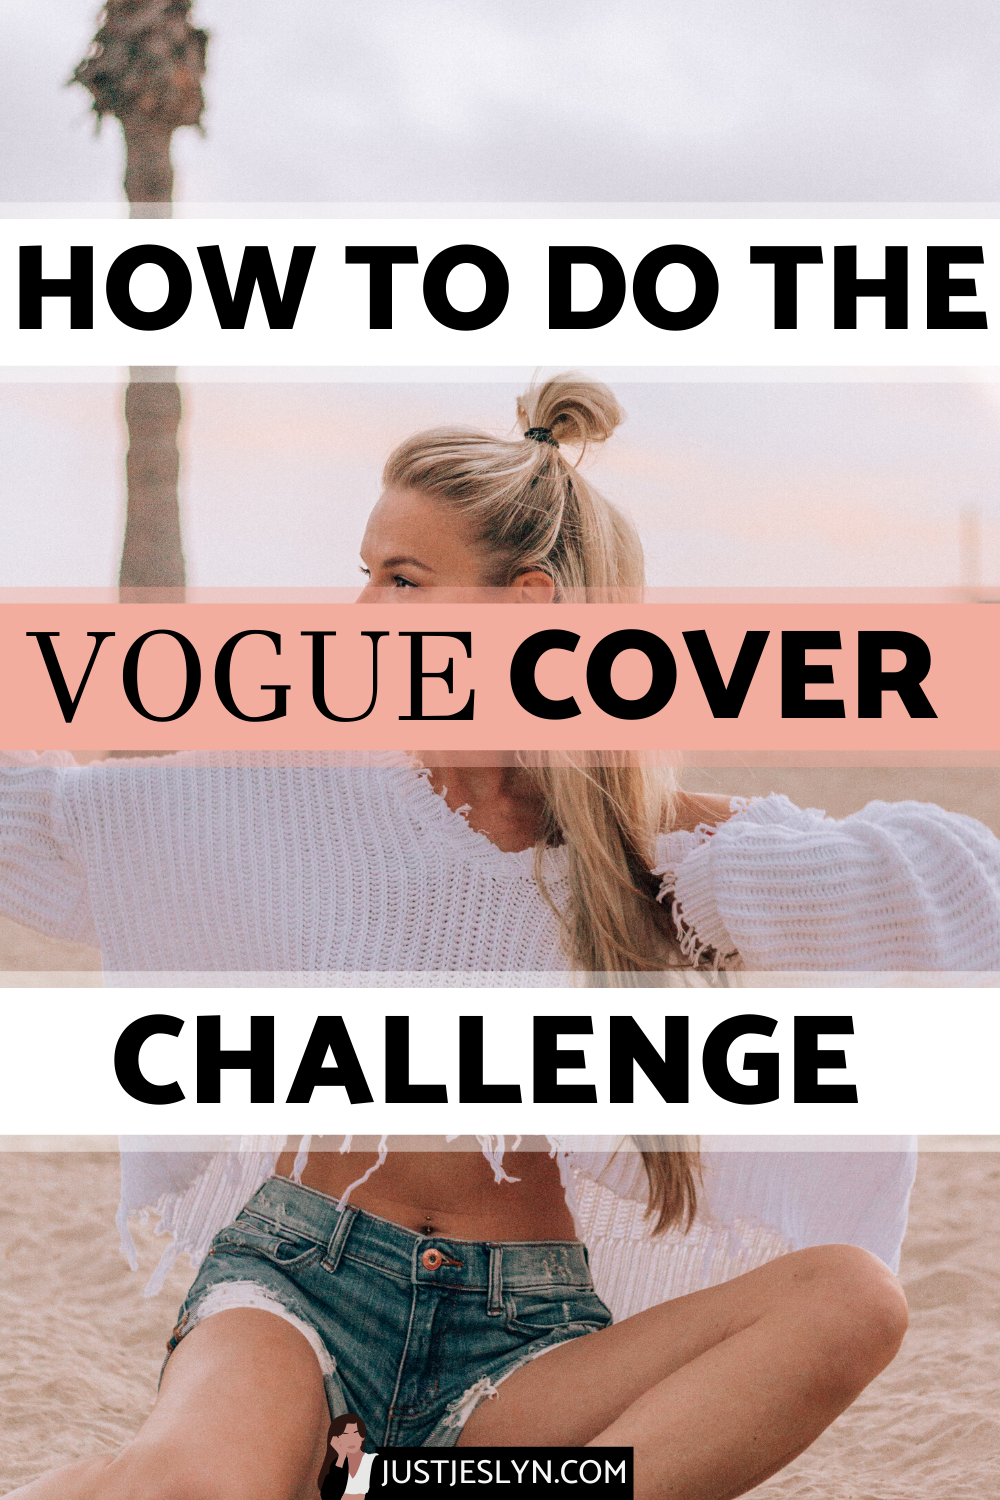 Vogue Challenge How To Make An Awesome Custom Vogue Cover Just Jes Lyn Vogue Covers Vogue Challenges